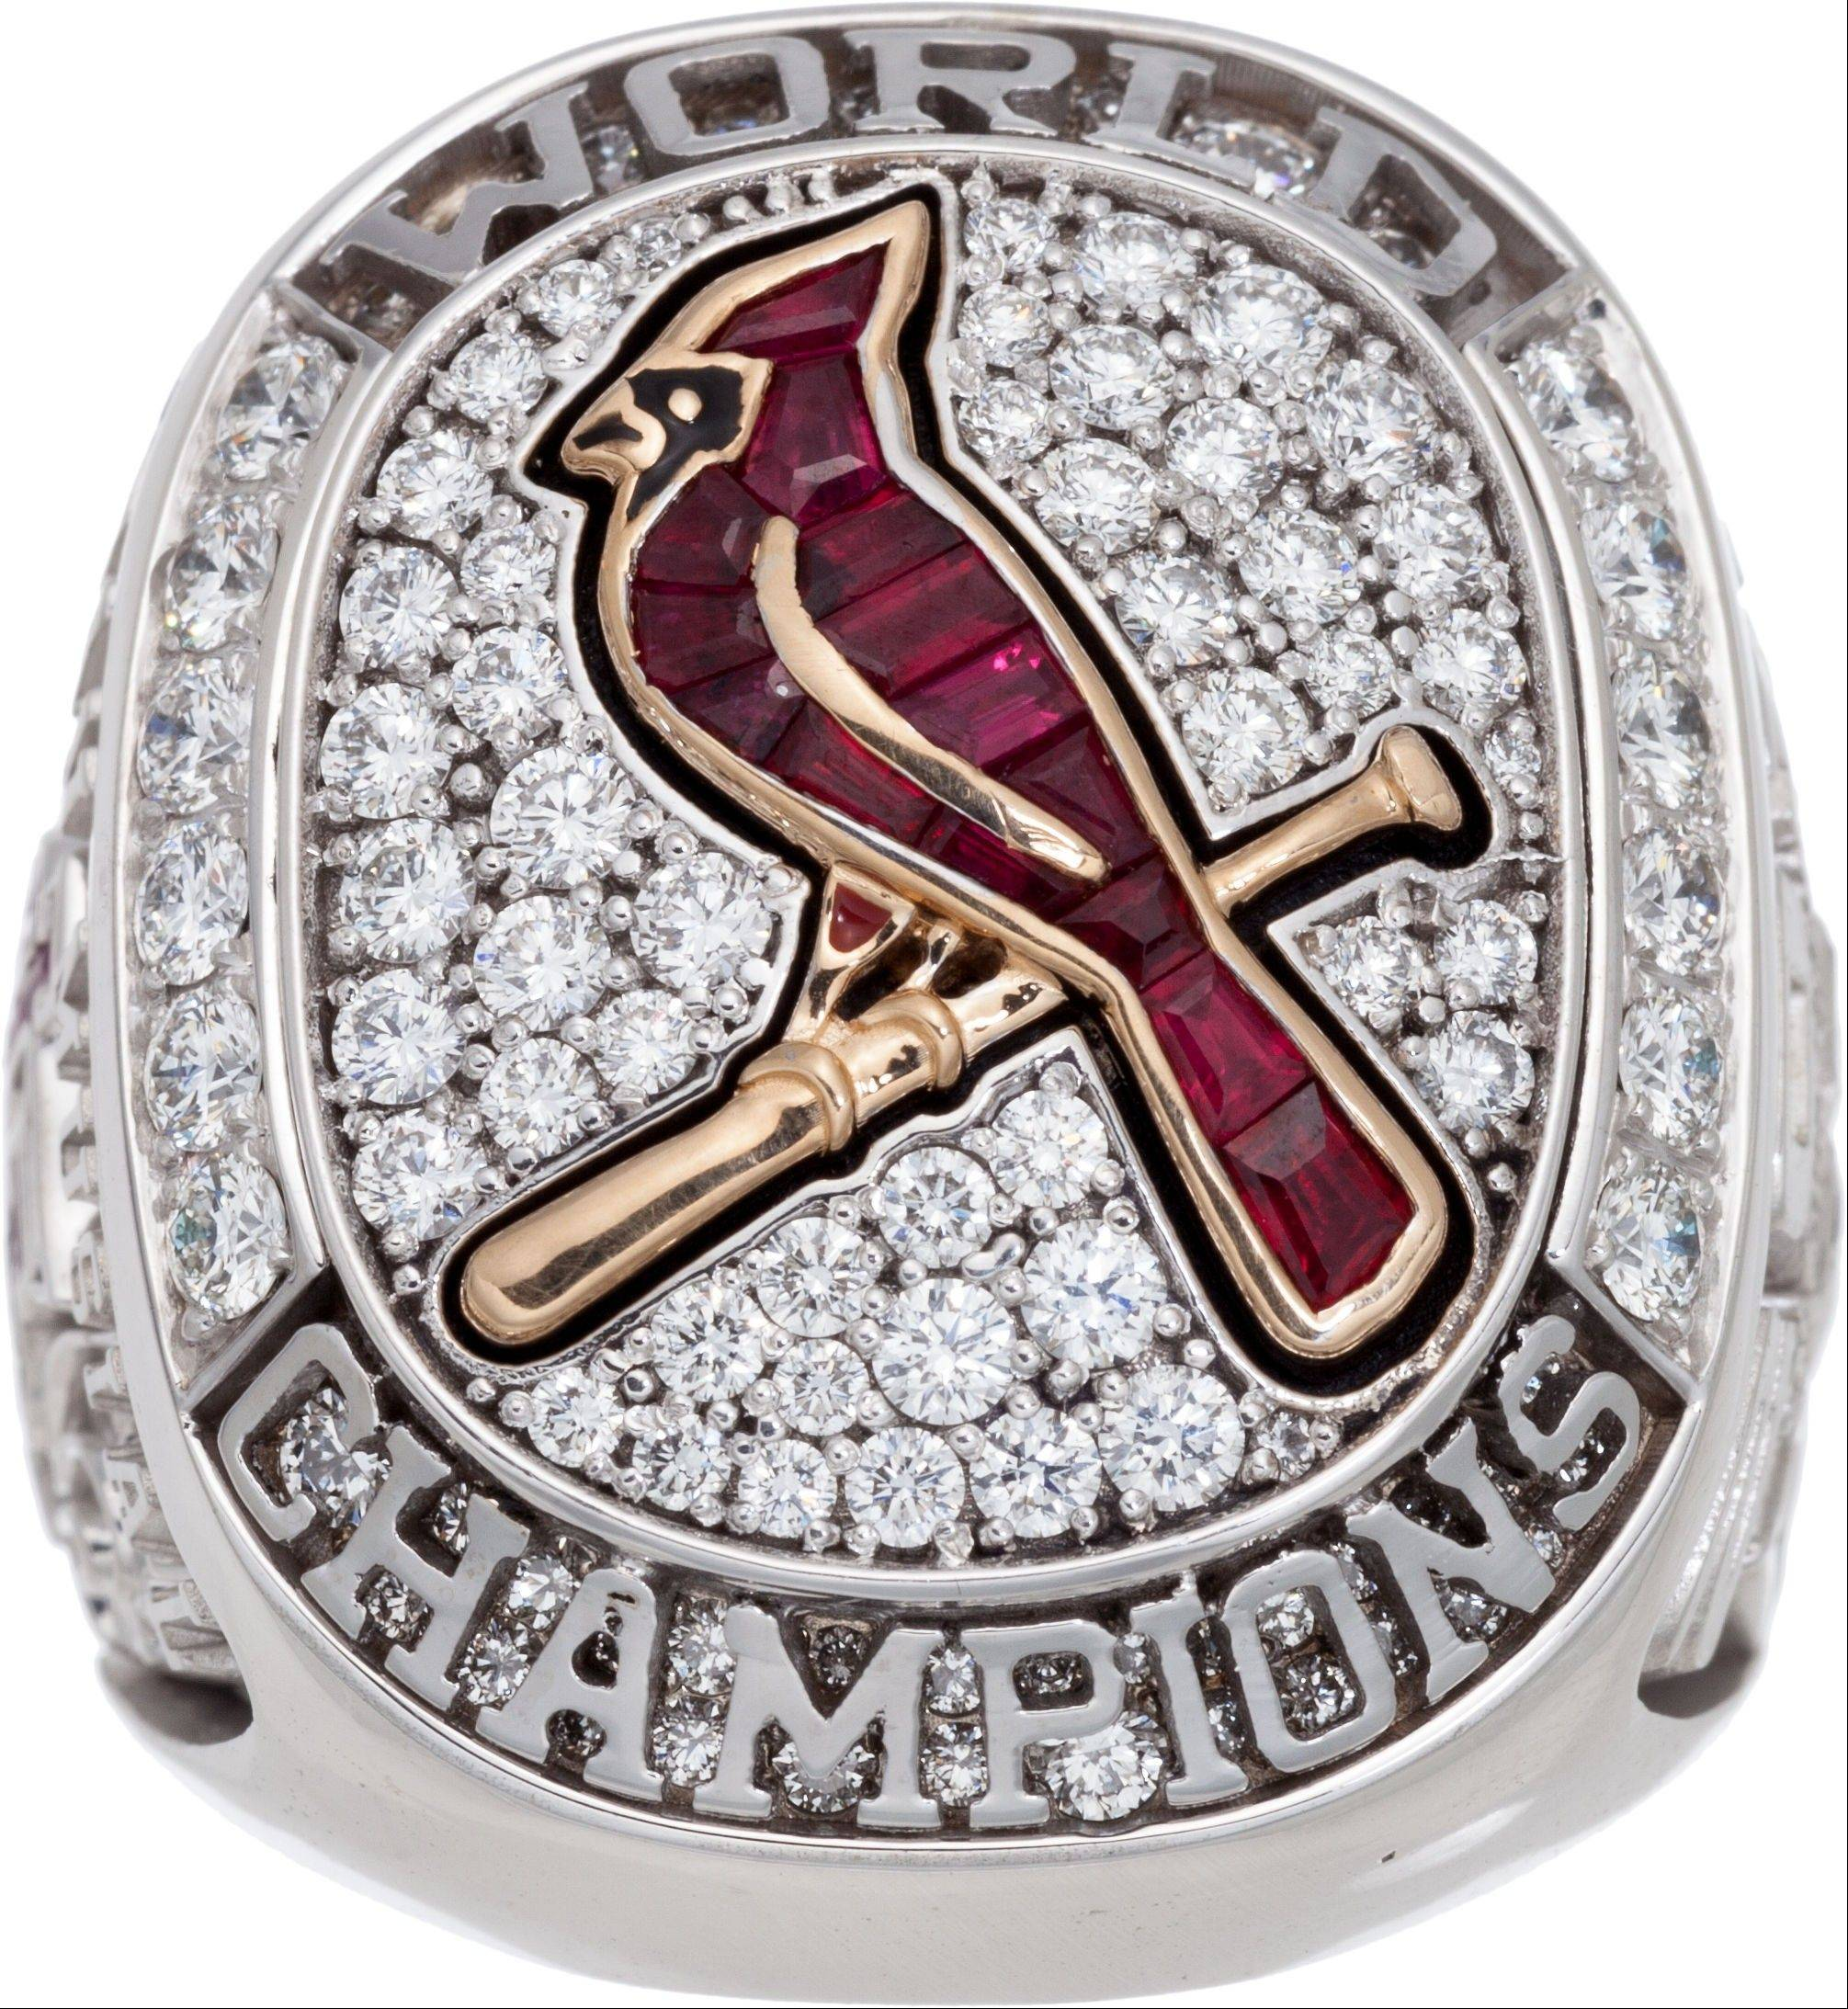 Stan Musial's 2011 St. Louis Cardinals World Championship ring sold for $191,200 at auction. His family kept most of his belongings, but grandson Brian Schwarze said Musial's four-bedroom Ladue home was stuffed with so many things he'd collected over the years that relatives decided on an auction.